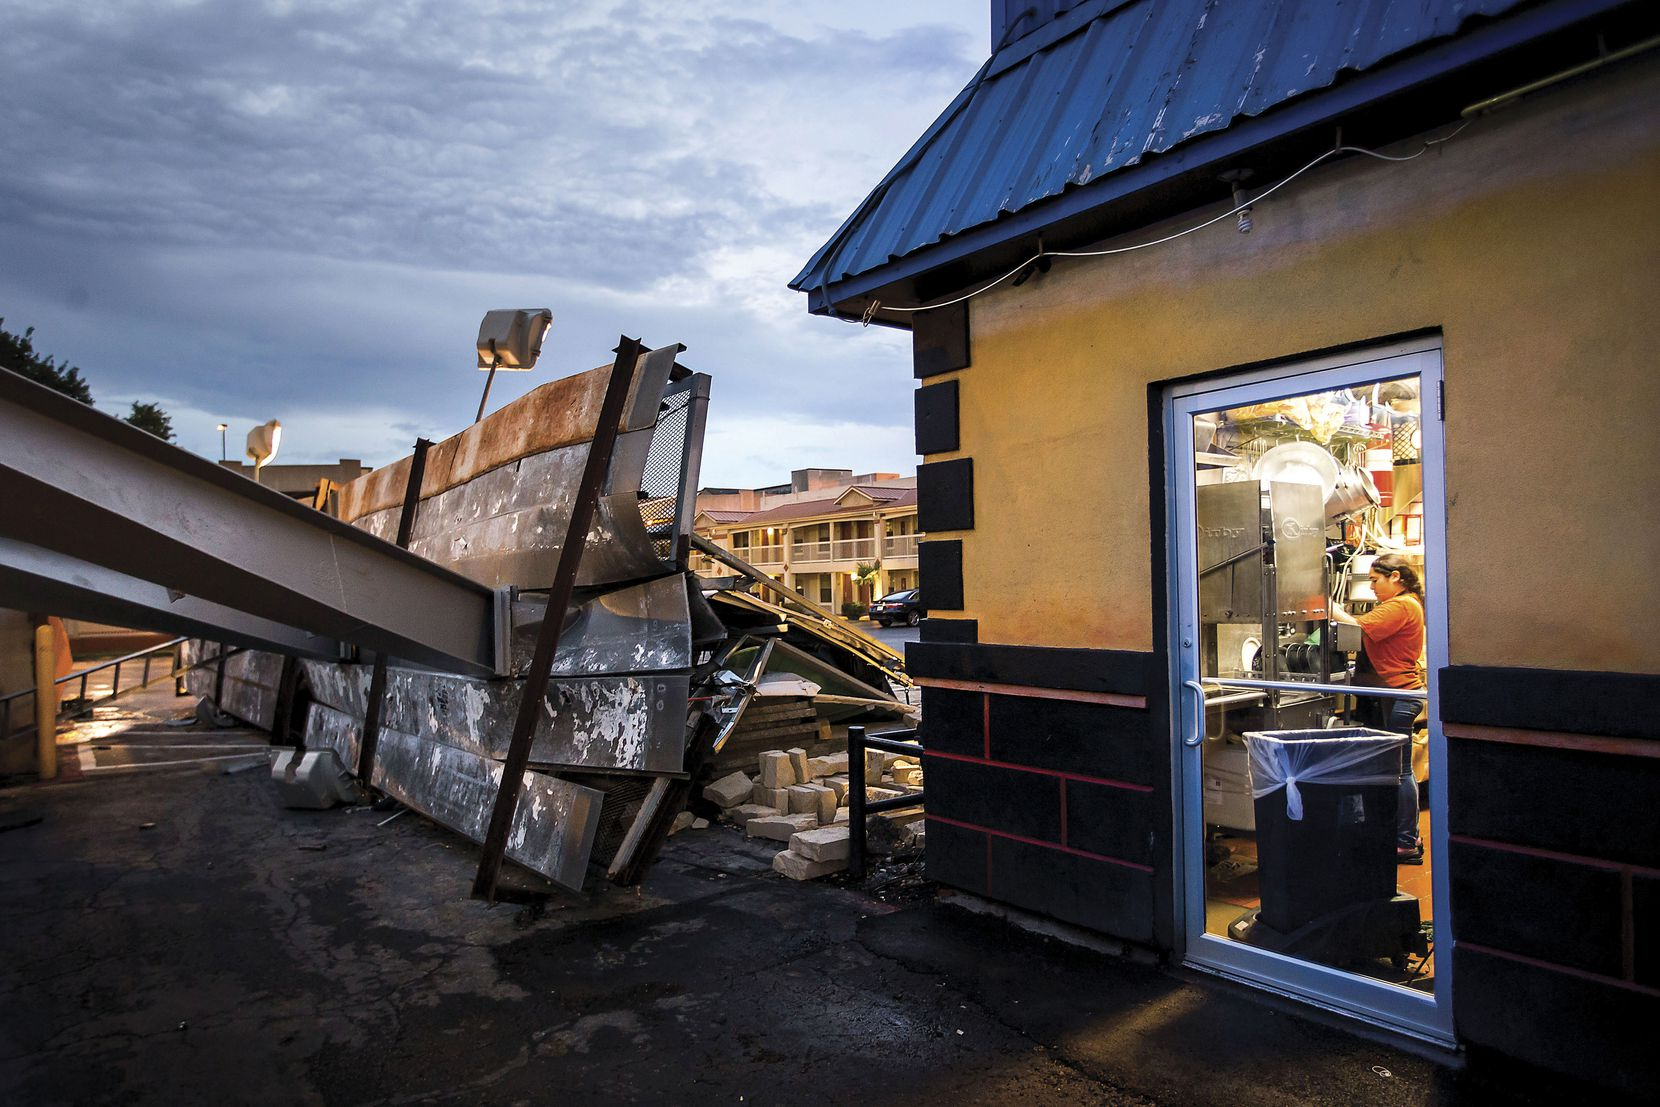 Employees worked in the kitchen of Buzzbrews diner in Dallas on June 27, mere feet away from the spot outside where a billboard was knocked over by storms, crushing a car in the parking lot of the adjacent Best Western Cityplace Inn.